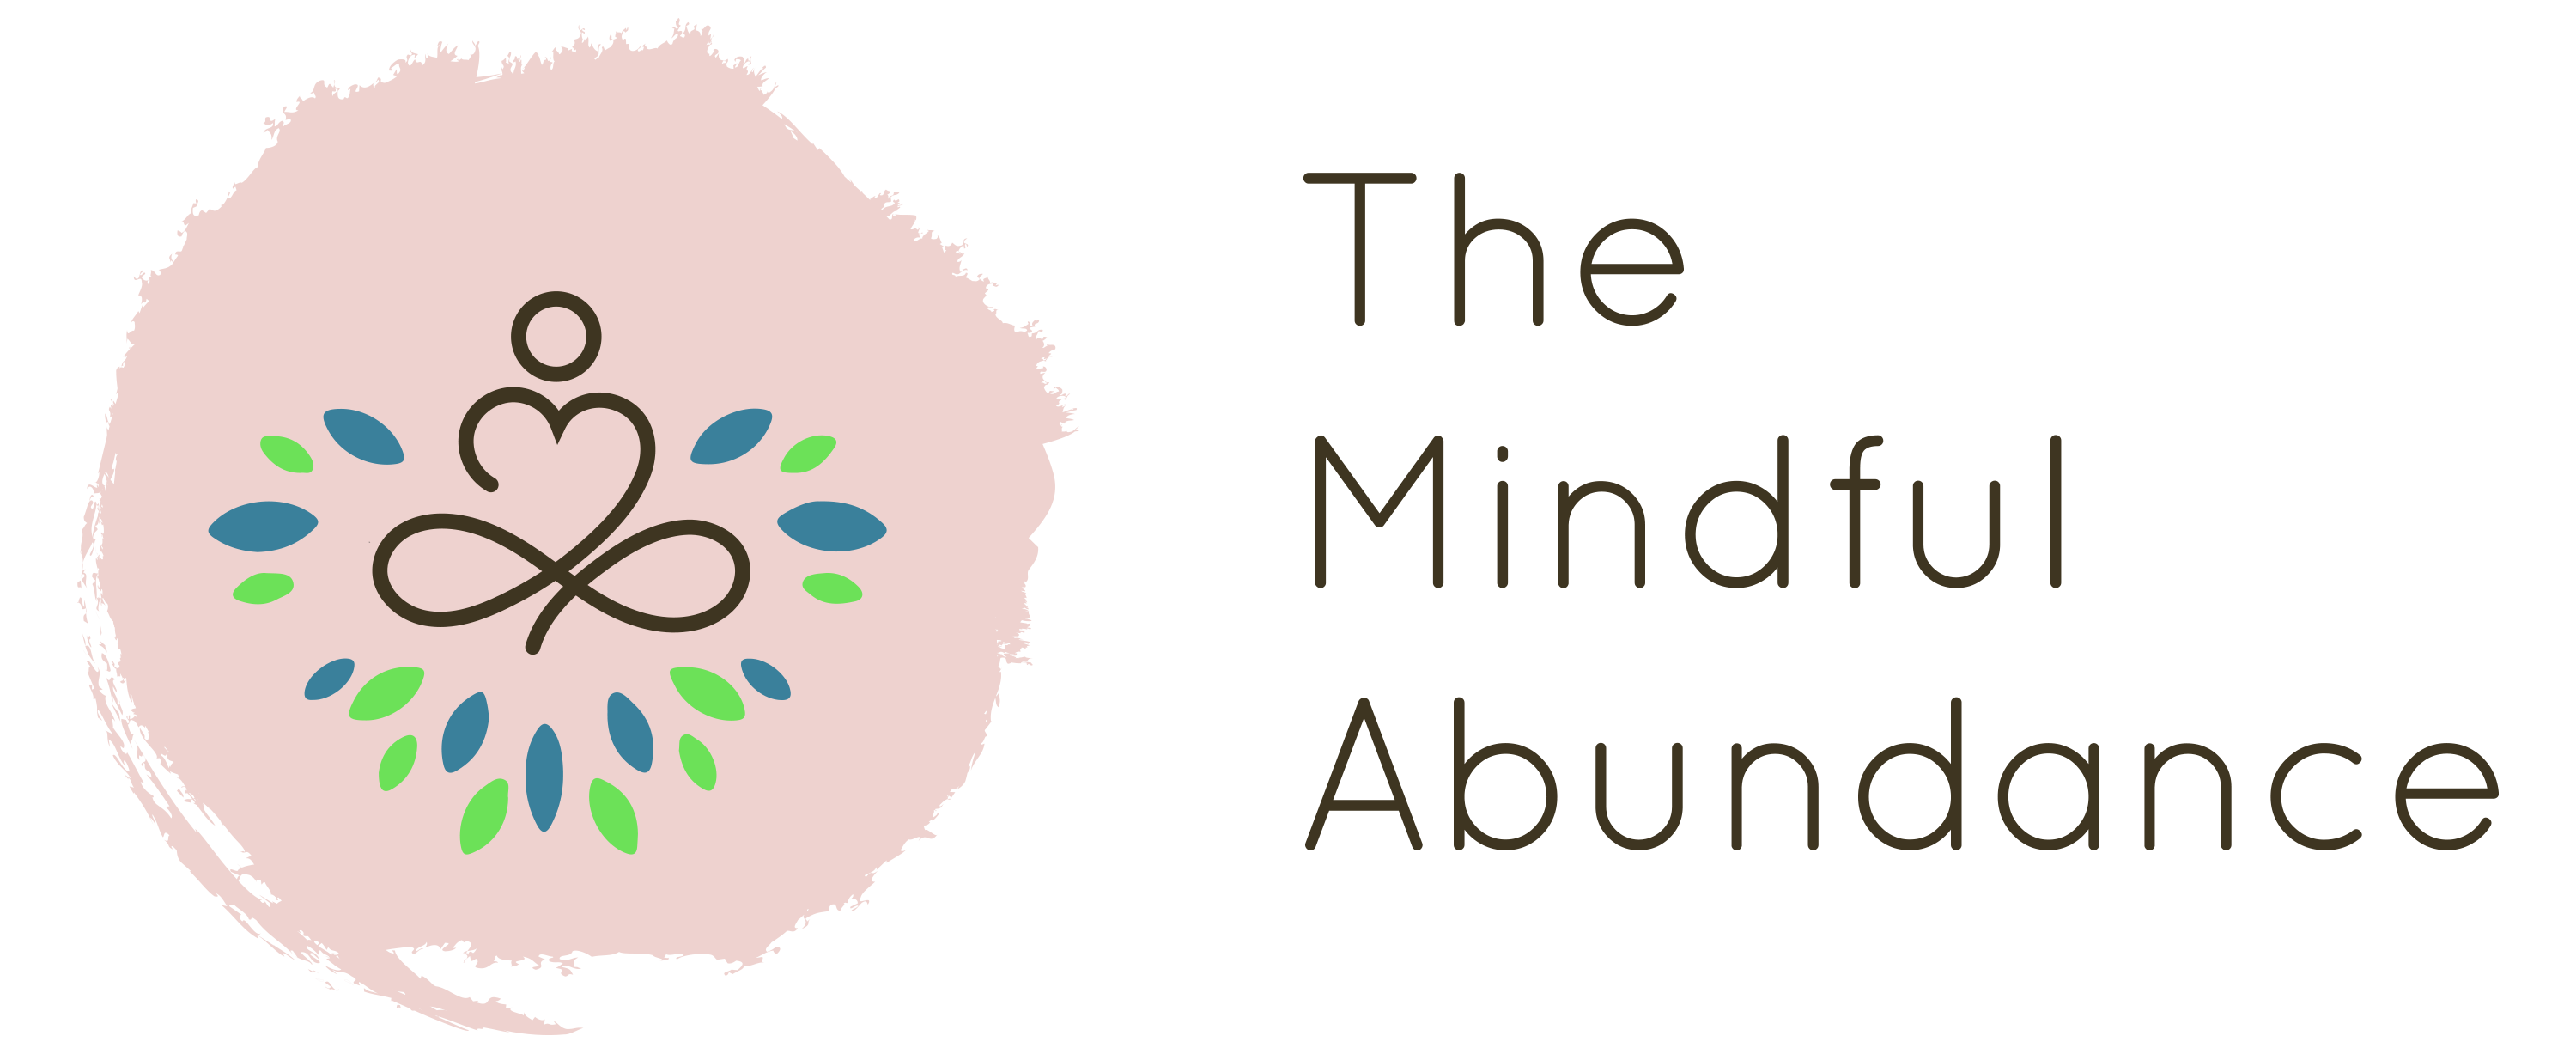 The Mindful Abundance